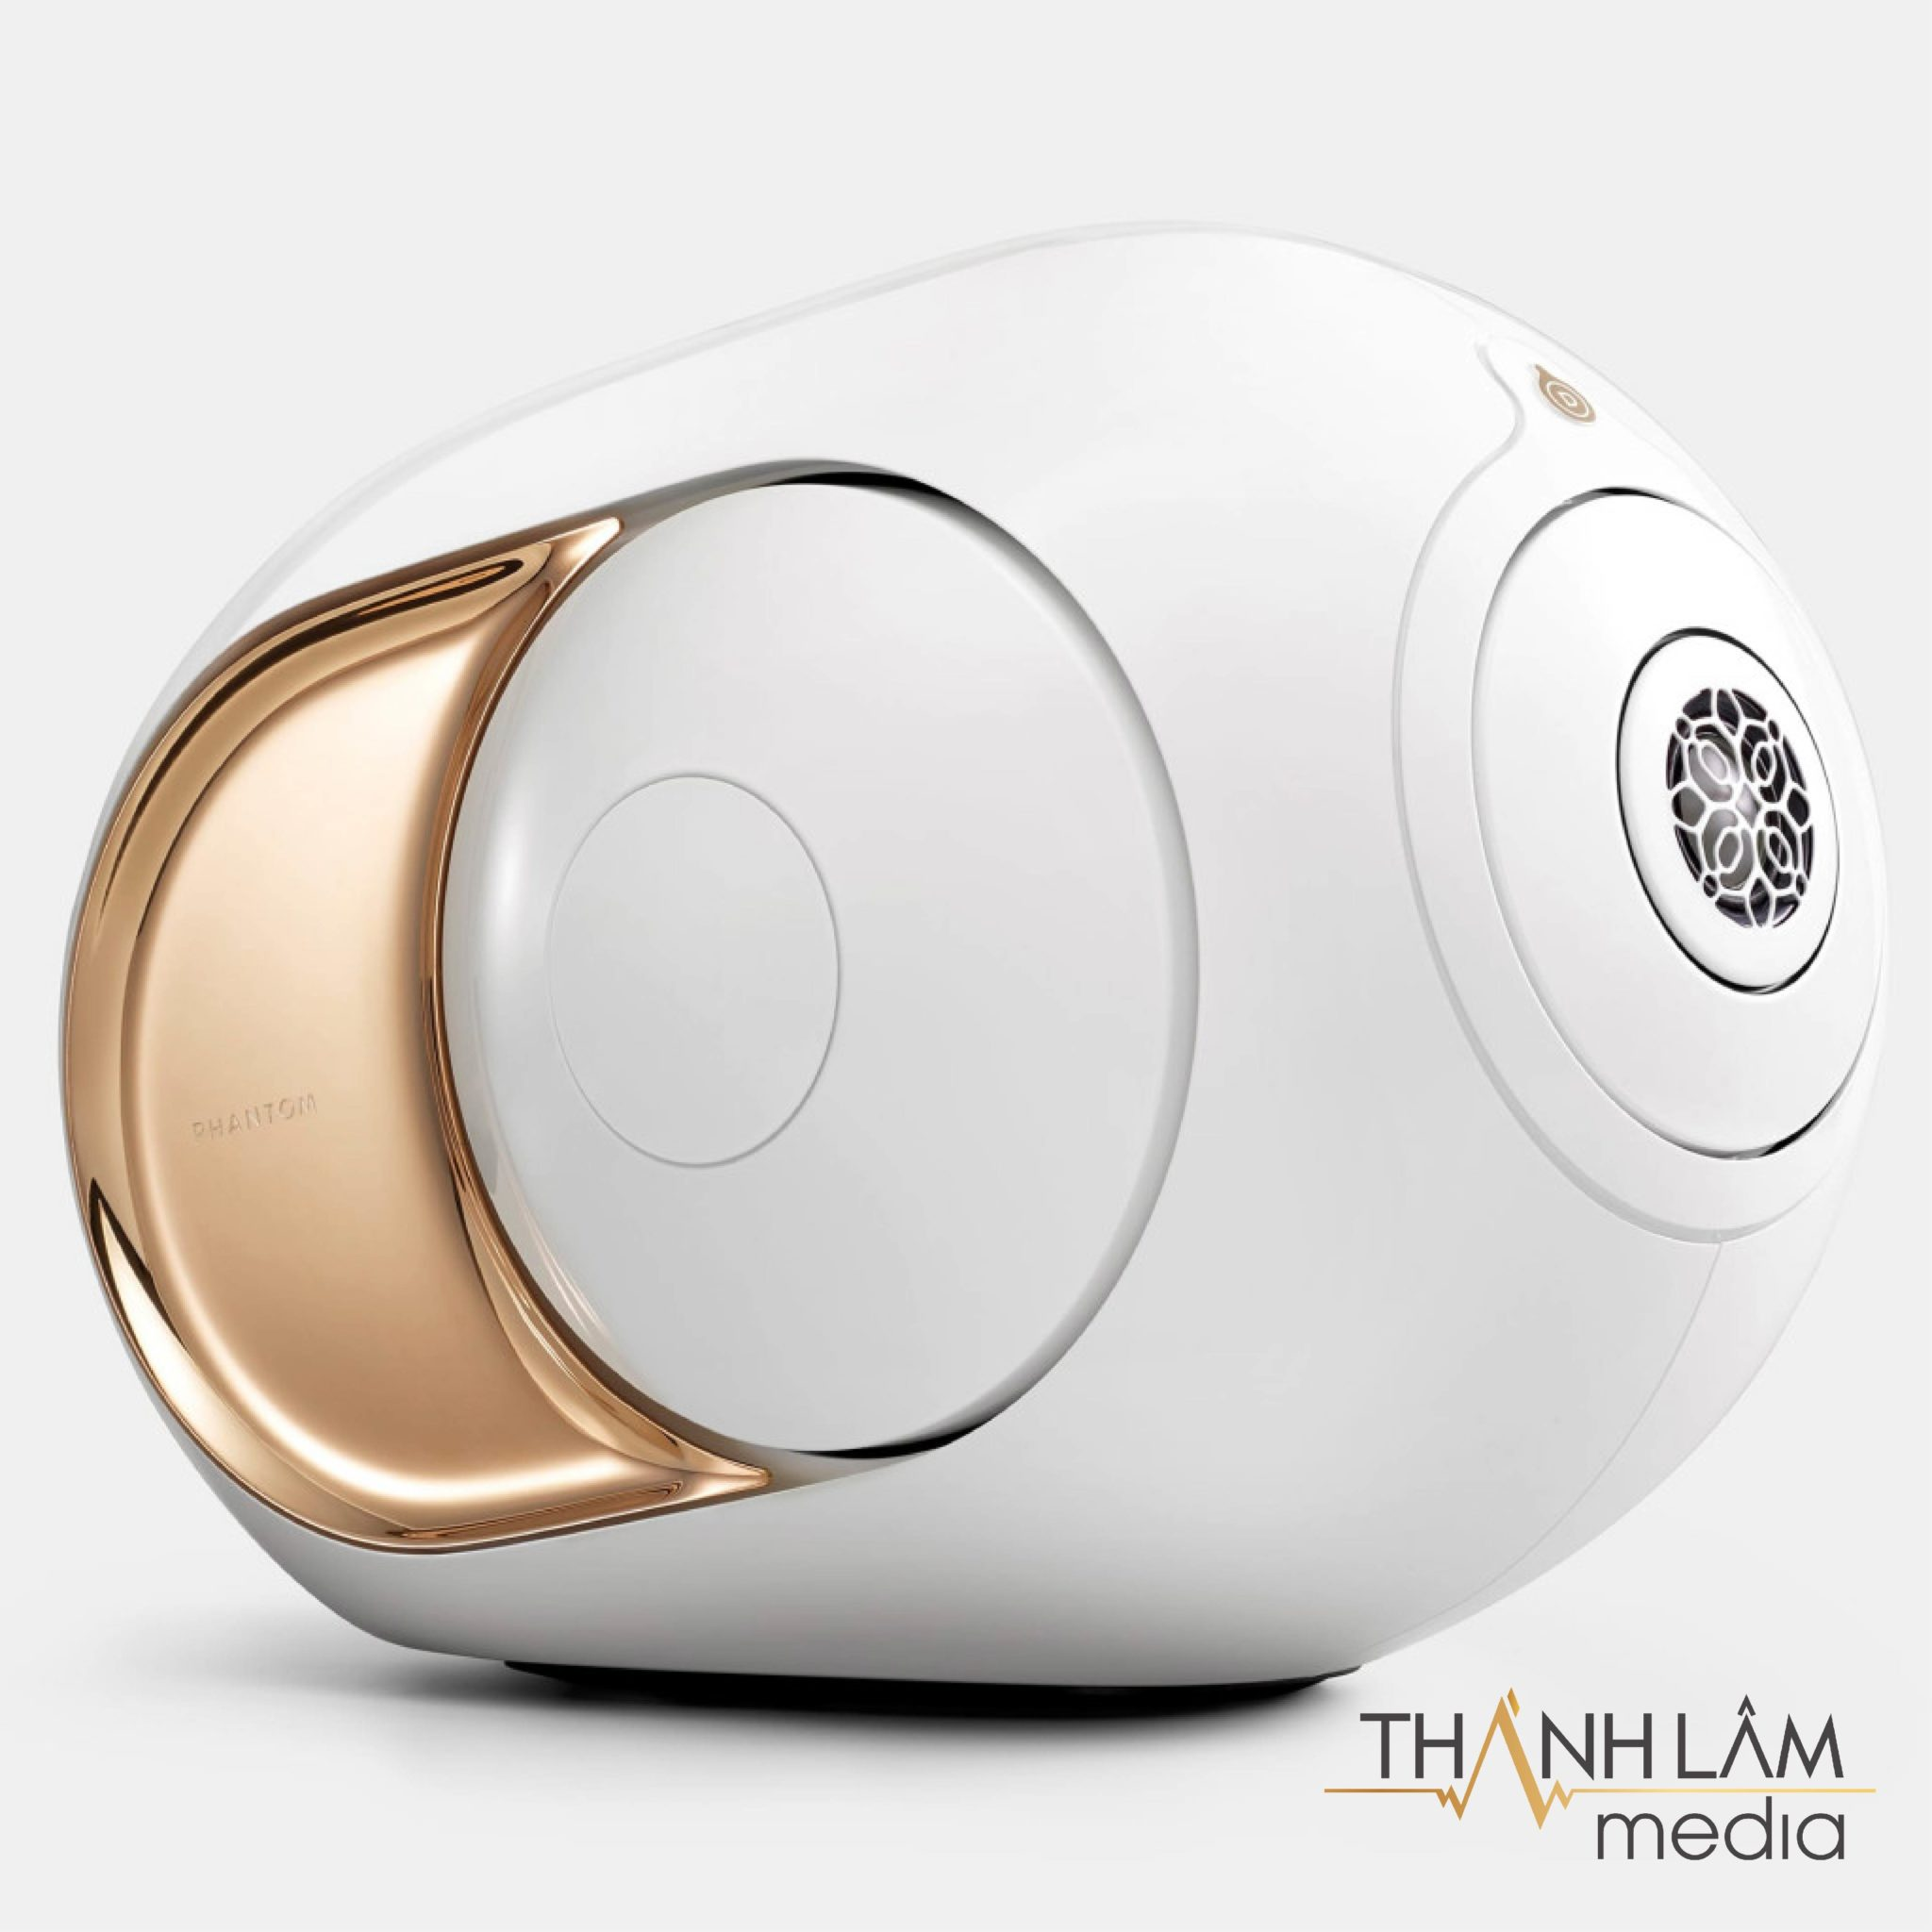 devialet-gold-phantom-01